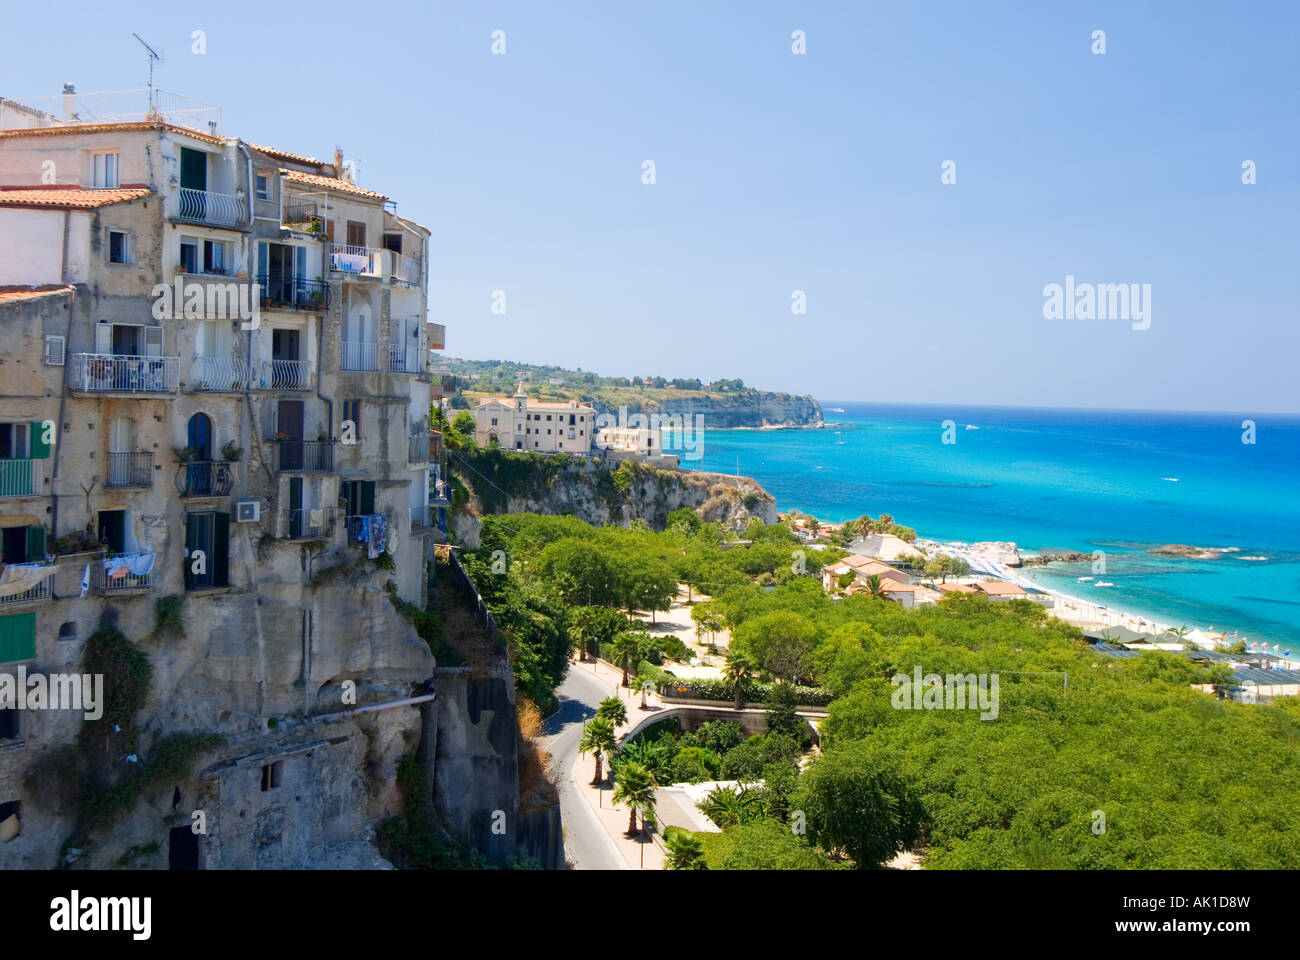 stadt von tropea kalabrien italien am mittelmeer stockfoto bild 14853432 alamy. Black Bedroom Furniture Sets. Home Design Ideas